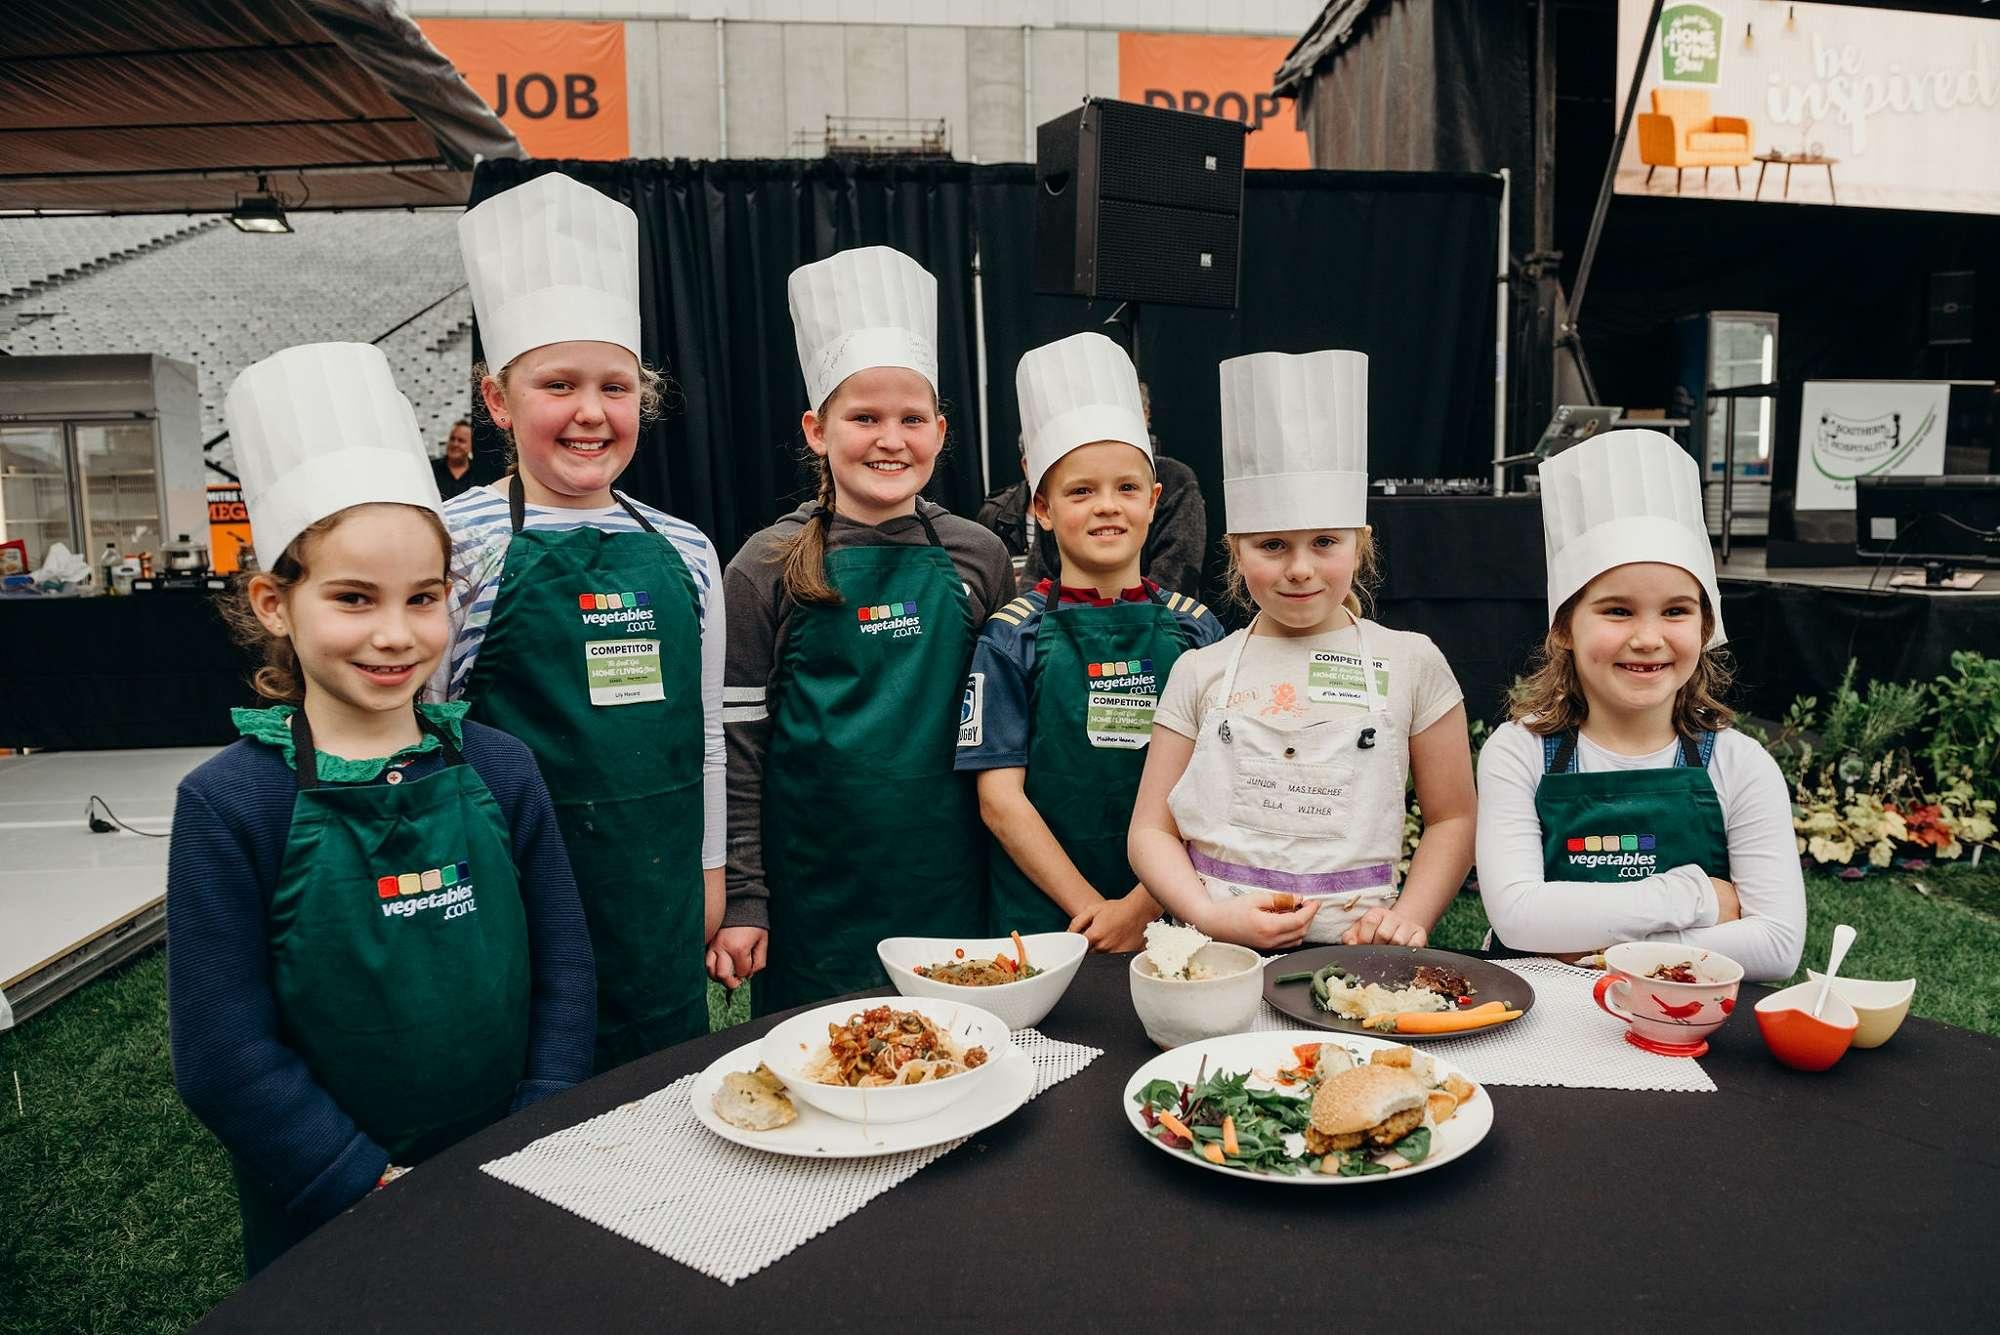 The Finalist of Kiwi Kids Can Cook with their dish